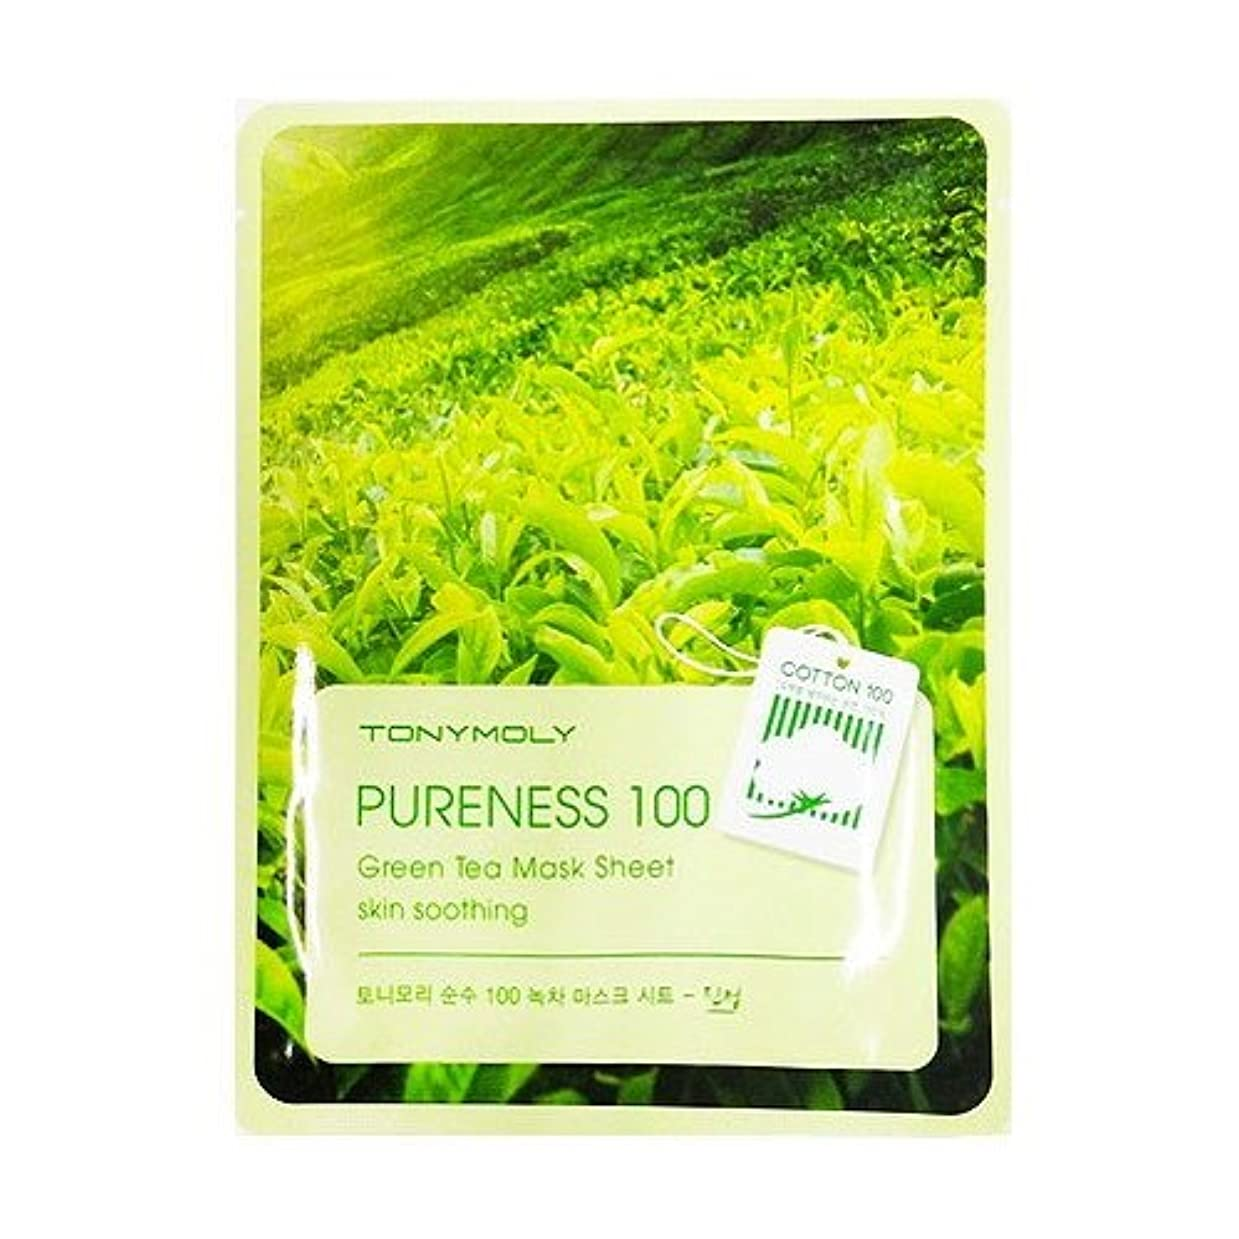 規制ピンクめったに(6 Pack) TONYMOLY Pureness 100 Green Tea Mask Sheet Skin Soothing (並行輸入品)